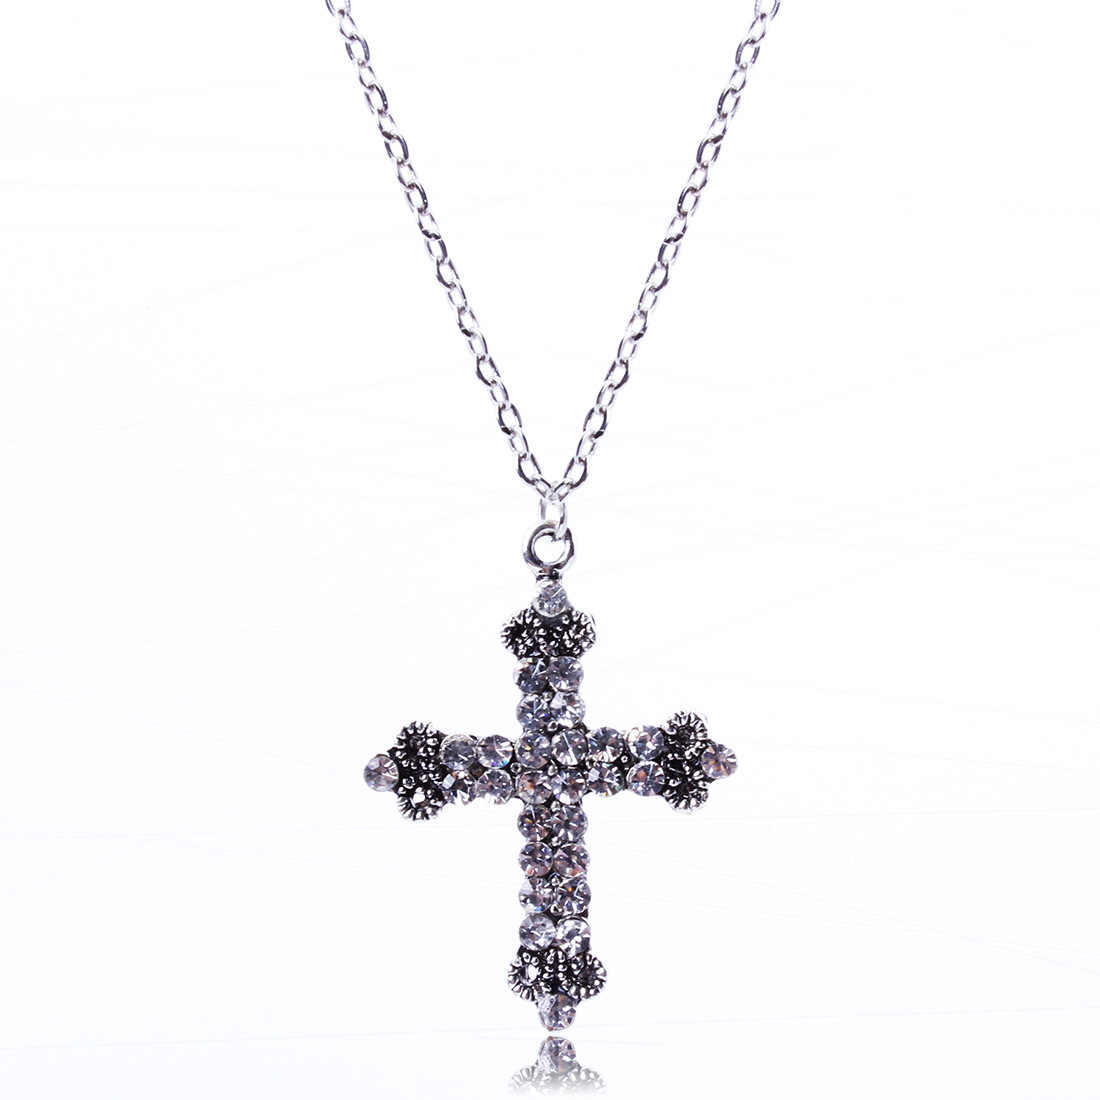 New Simple Crosses Retro Vintage Cross Necklace Women Crystal Long Necklaces Bijoux Religious Jewelry Collares Largos Christian